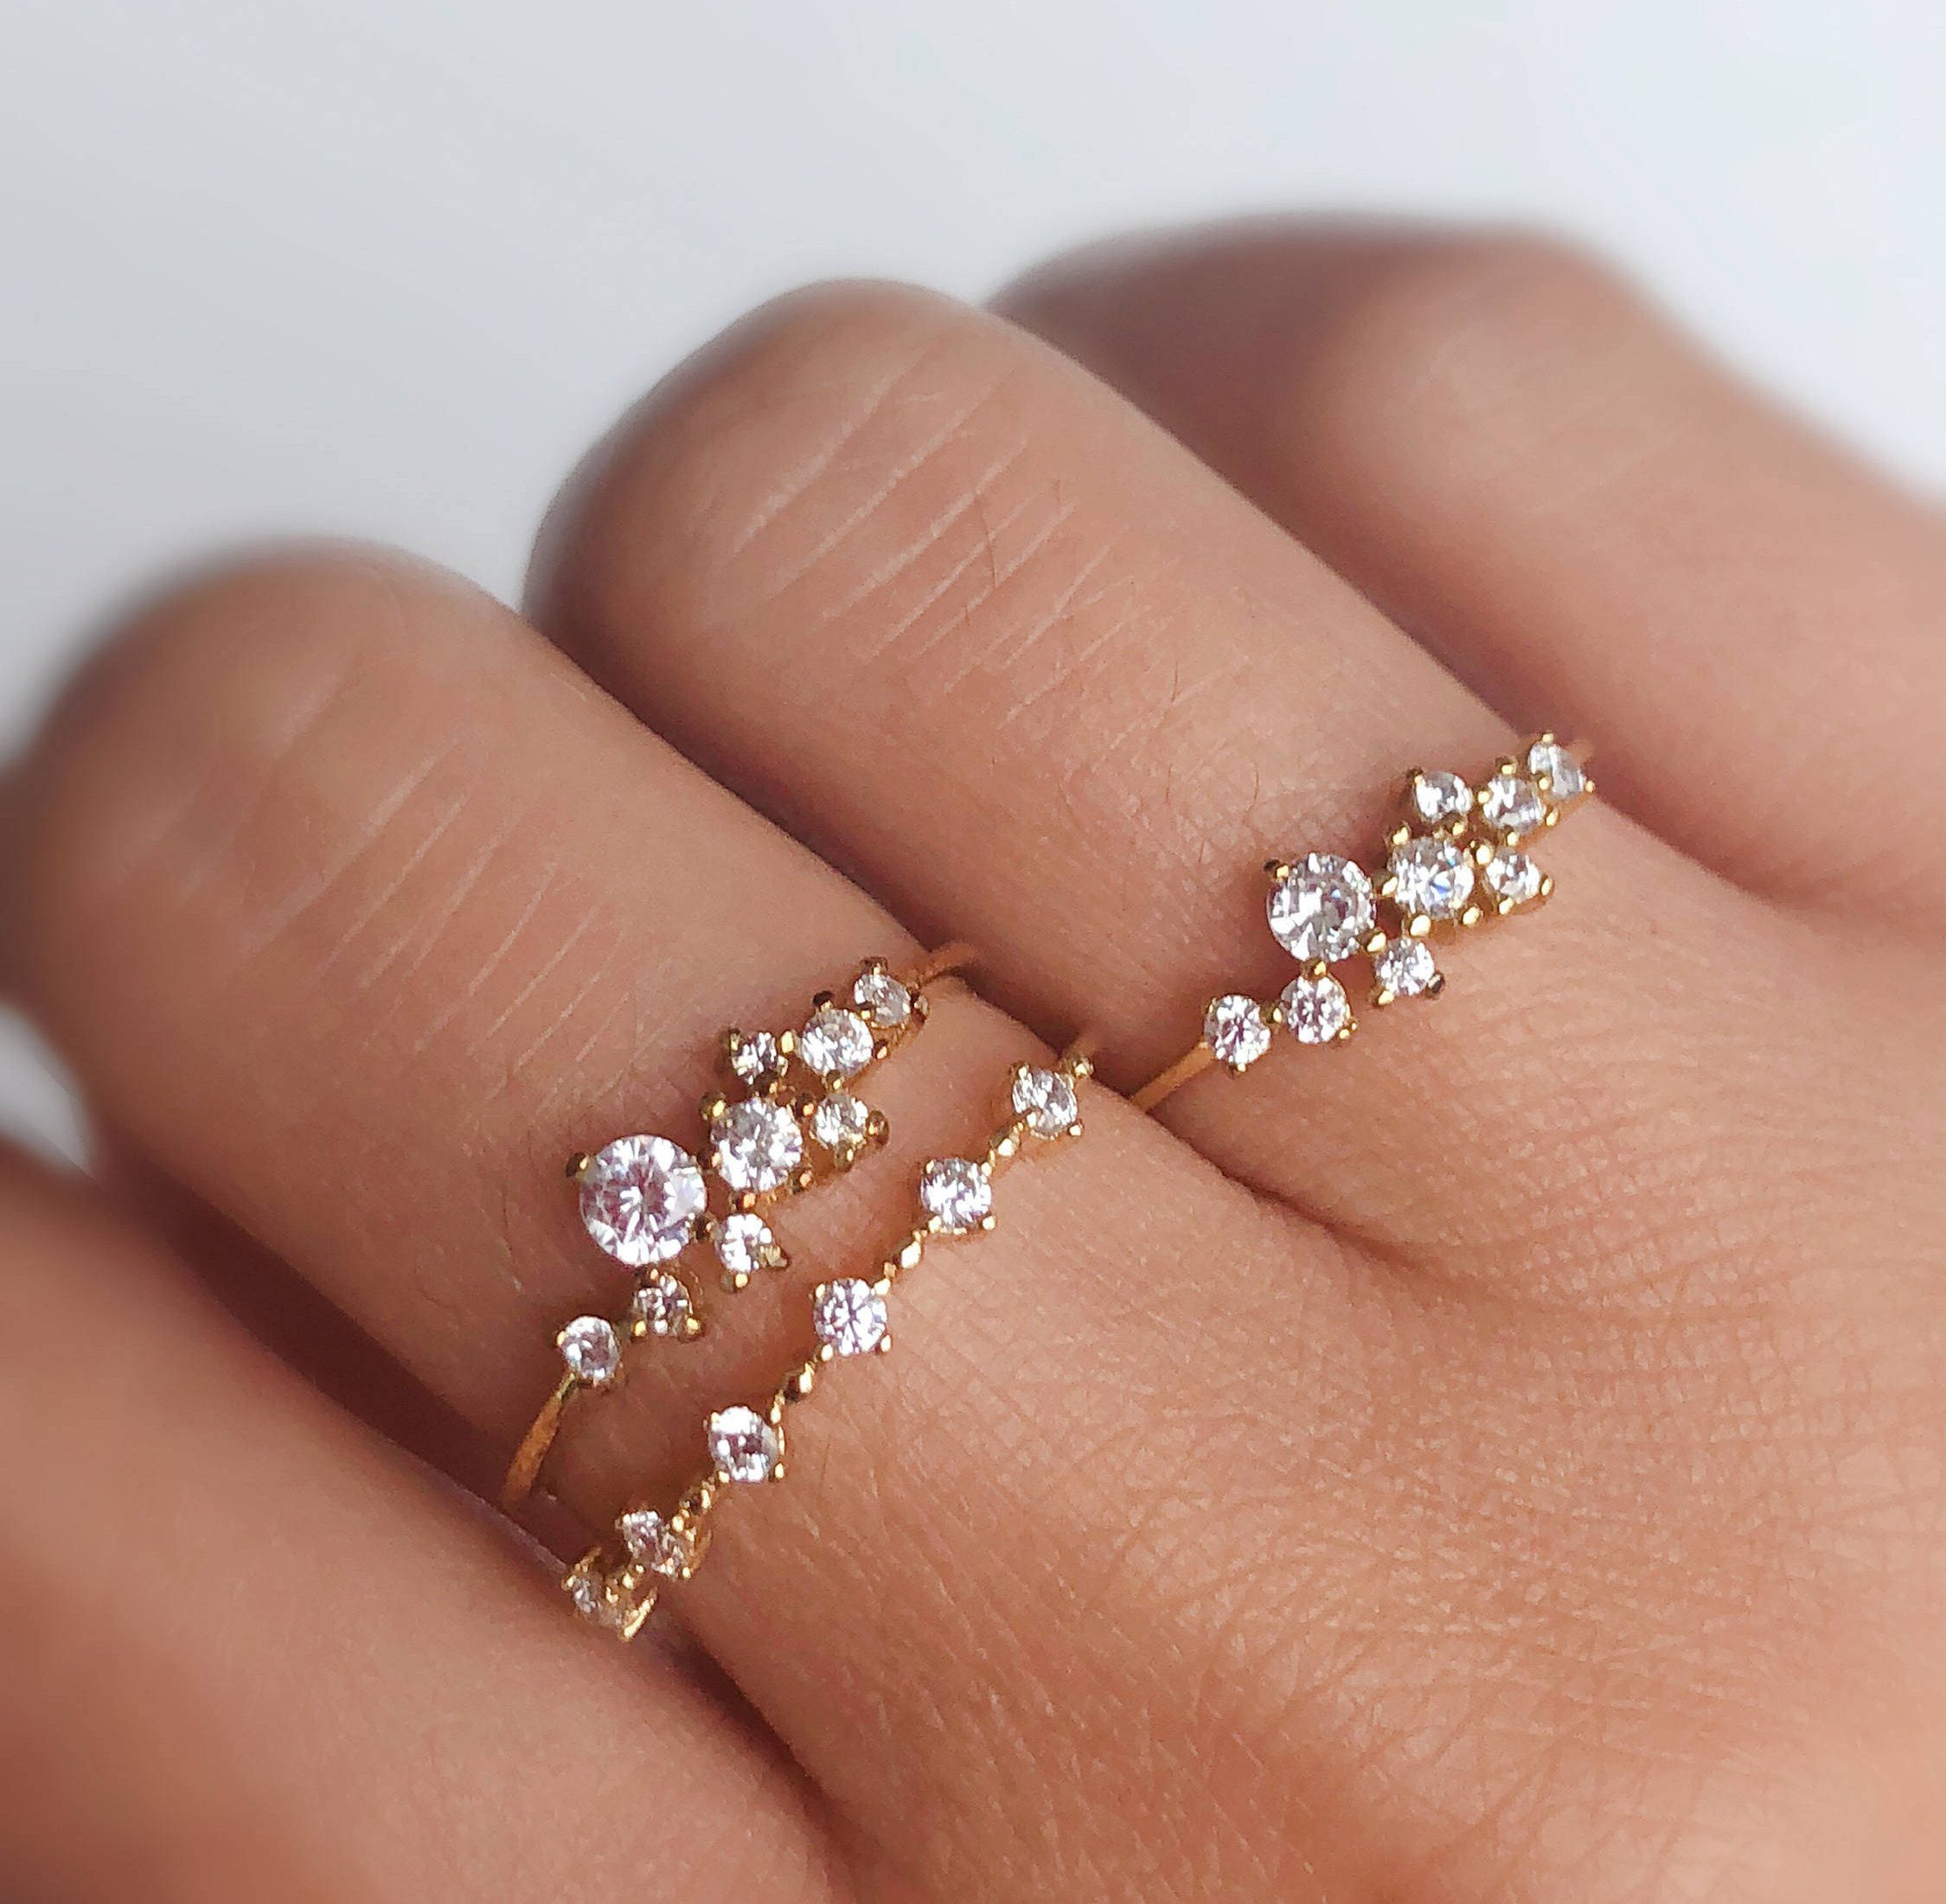 Photo of Diamond Cluster Ring, 14K Gold Cluster Ring, November Birthstone Ring,  Stackable Dainty Ring, Simple Gold Ring, Engagement Ring